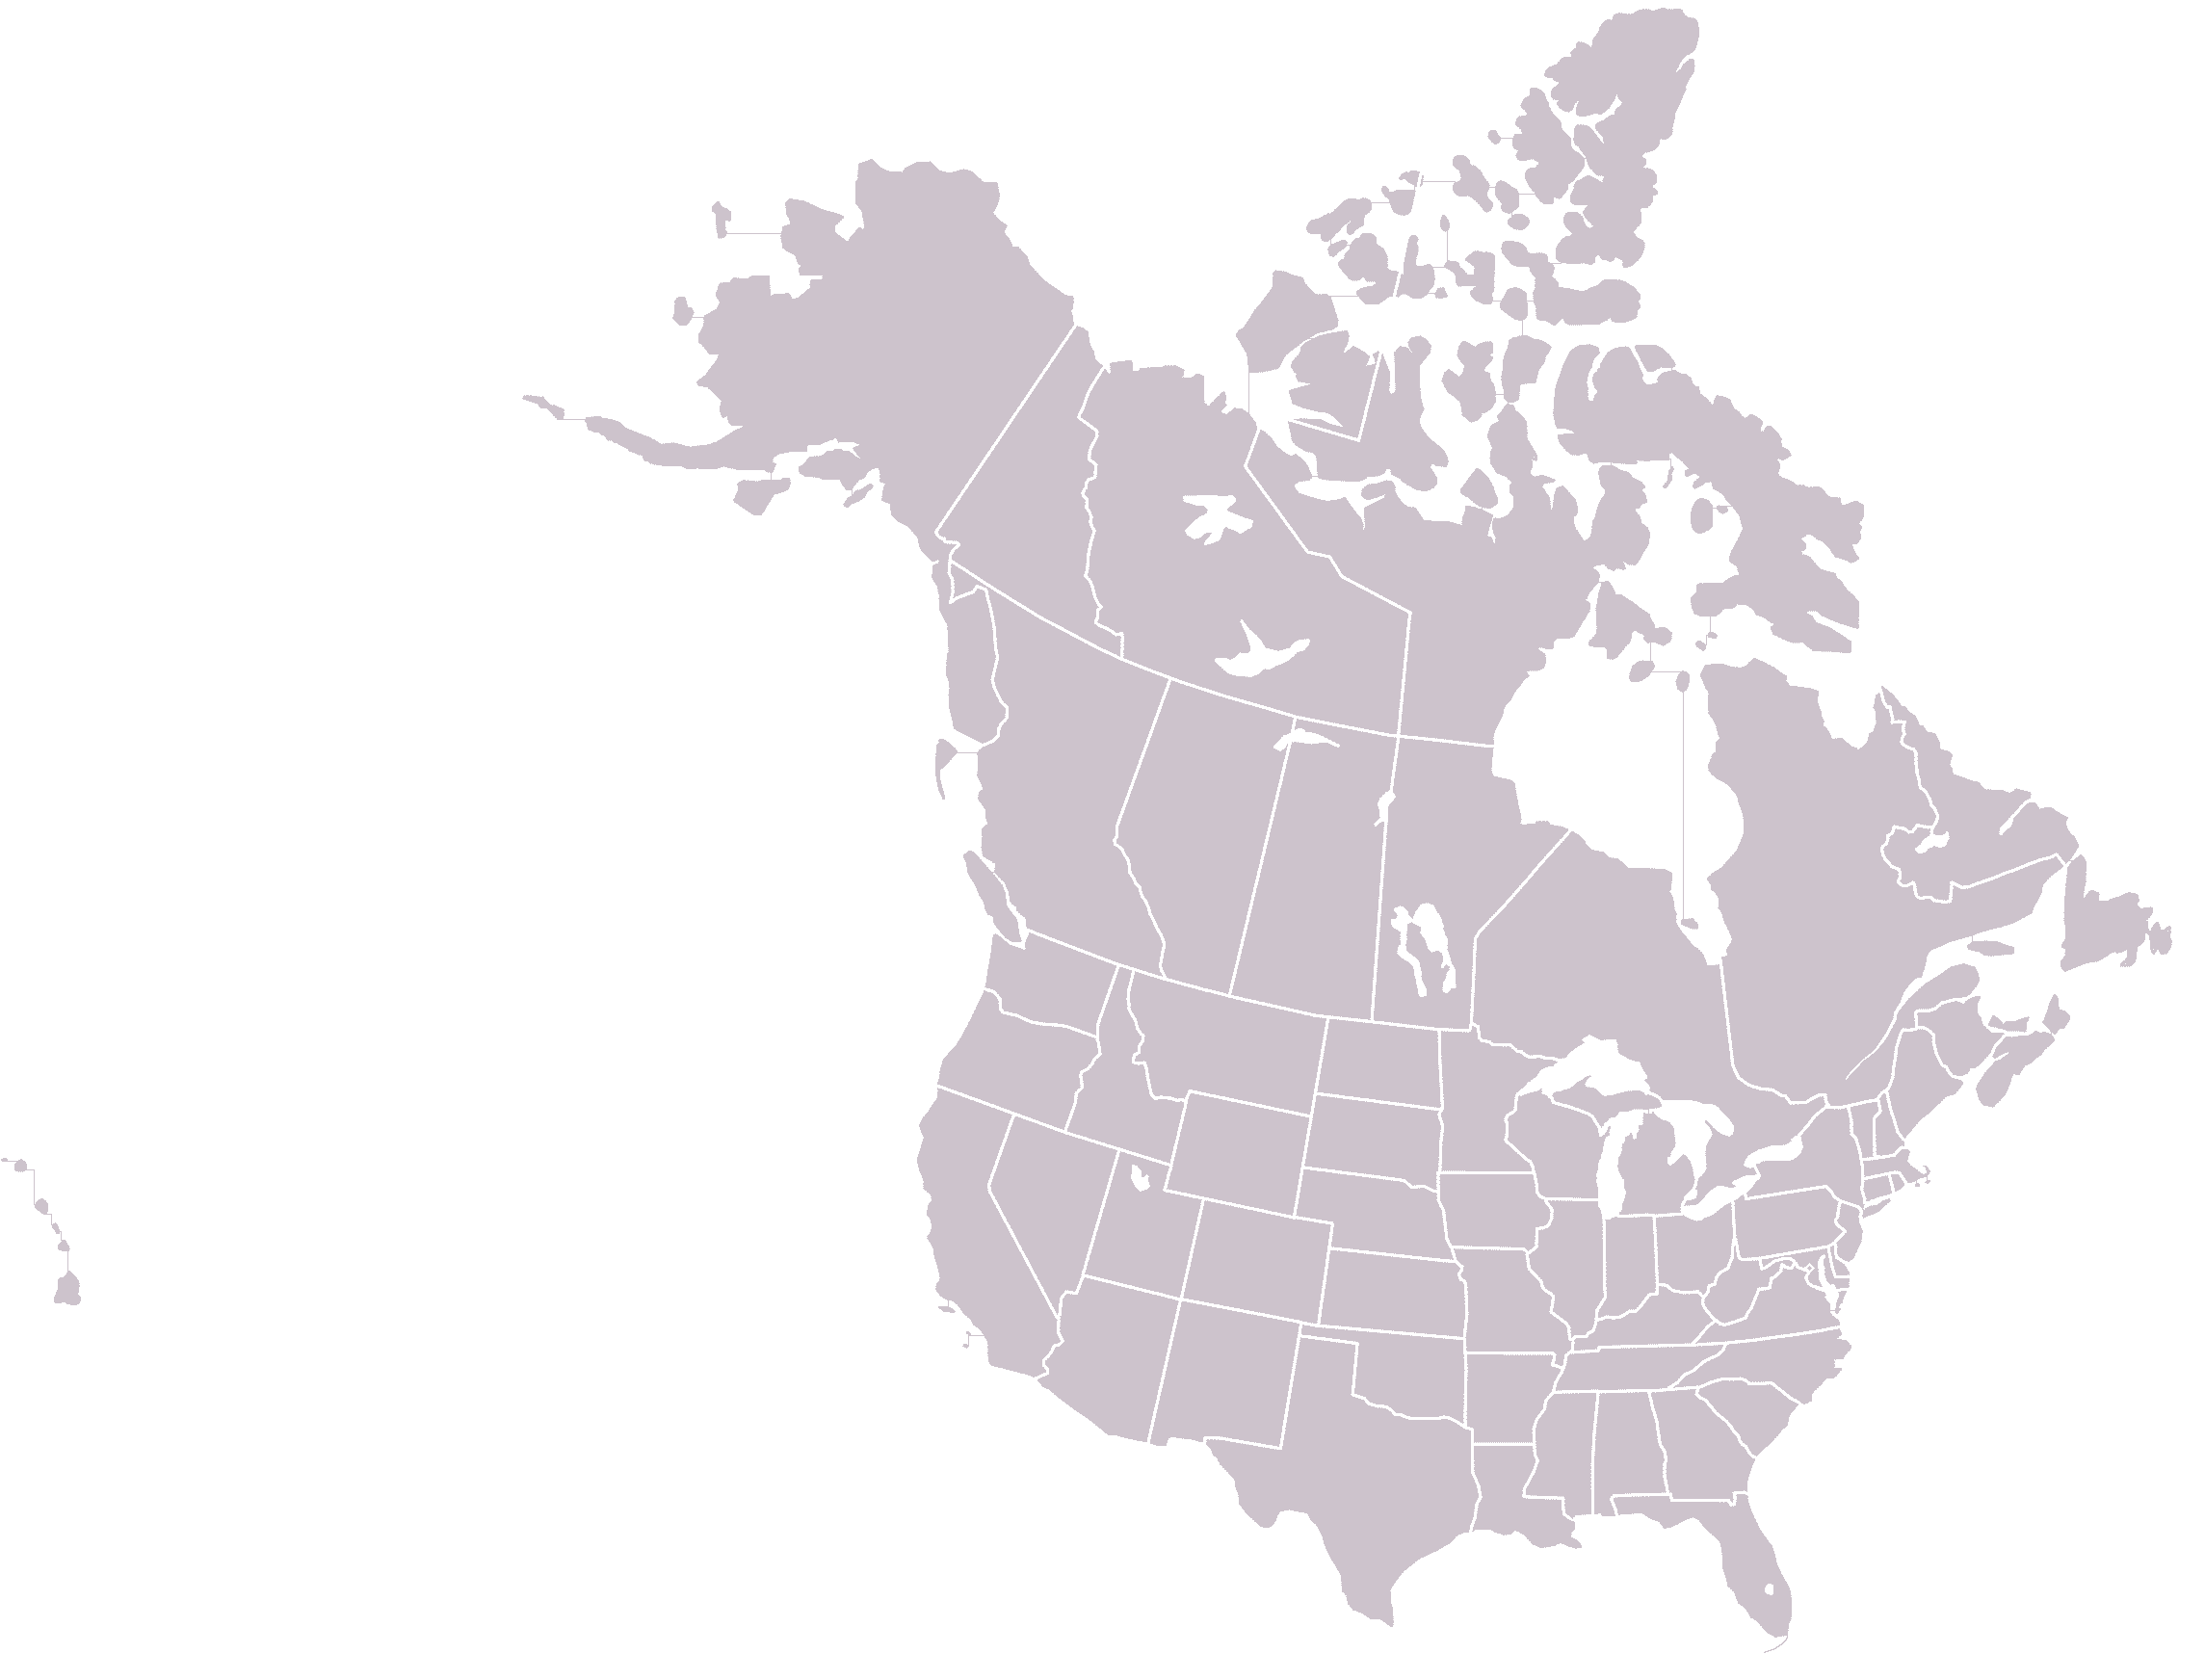 fileblankmap usa states canada provincespng